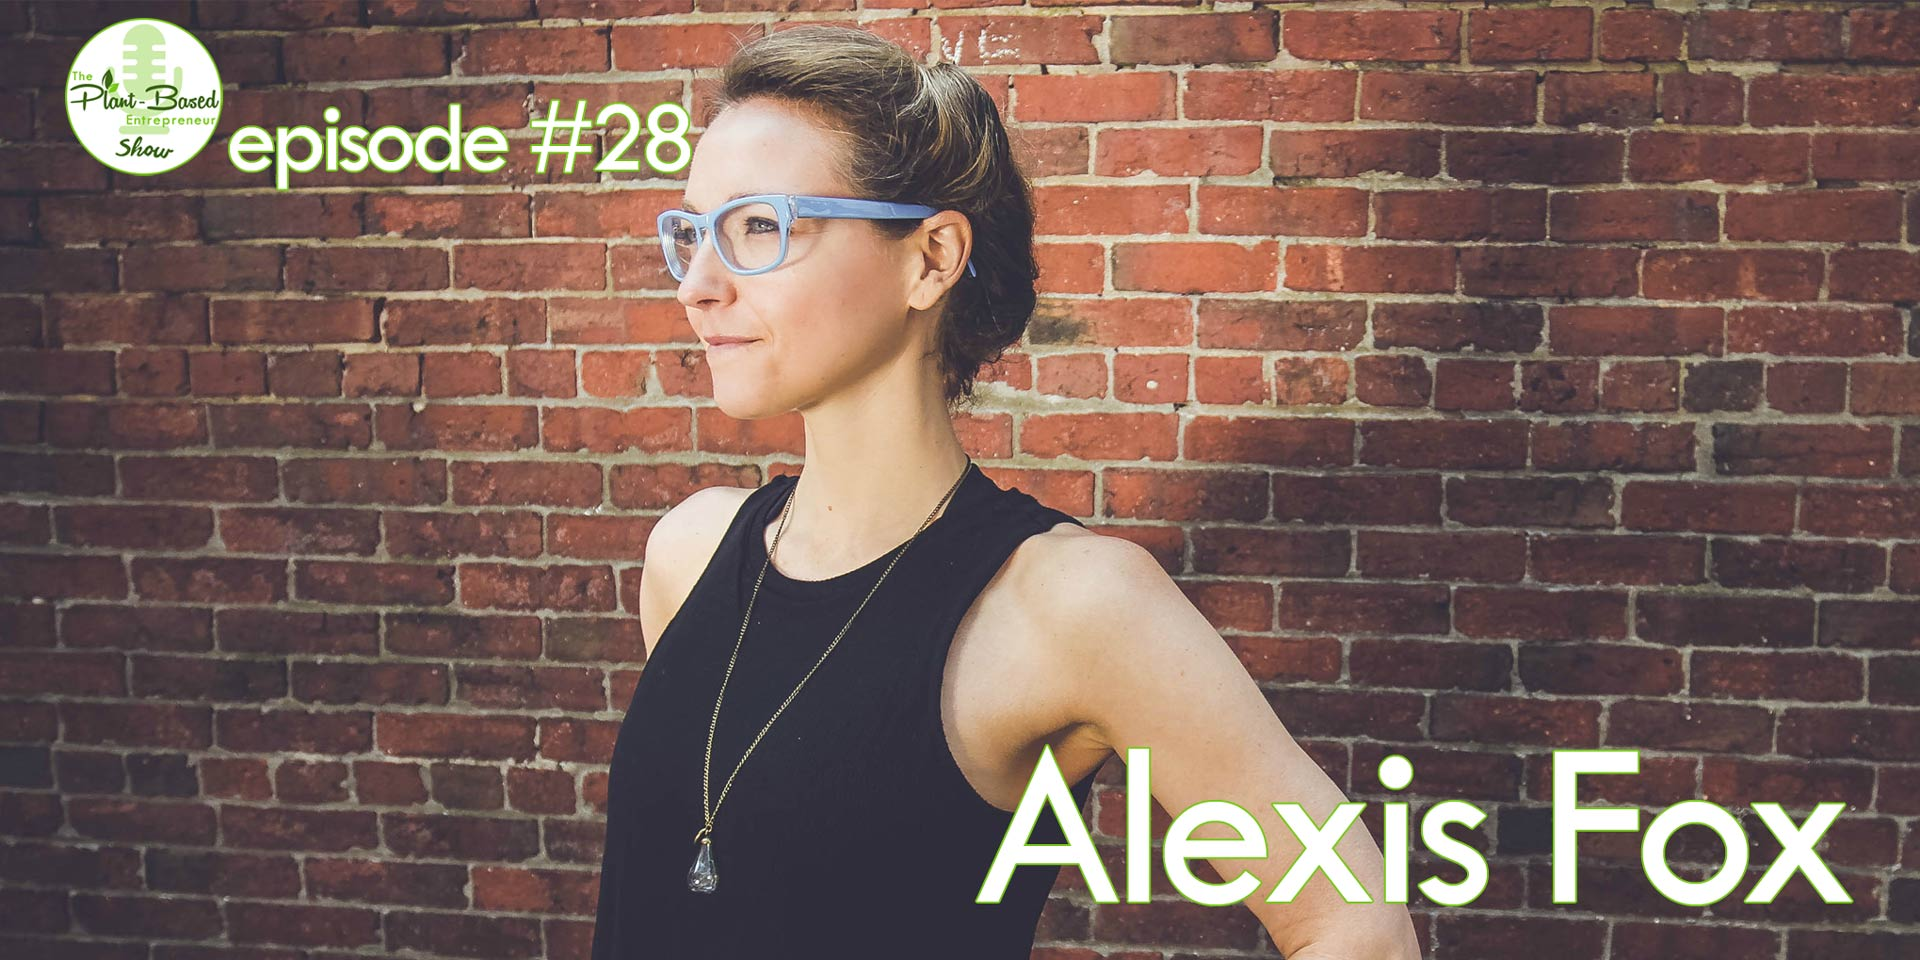 Episode #28 - Alexis Fox